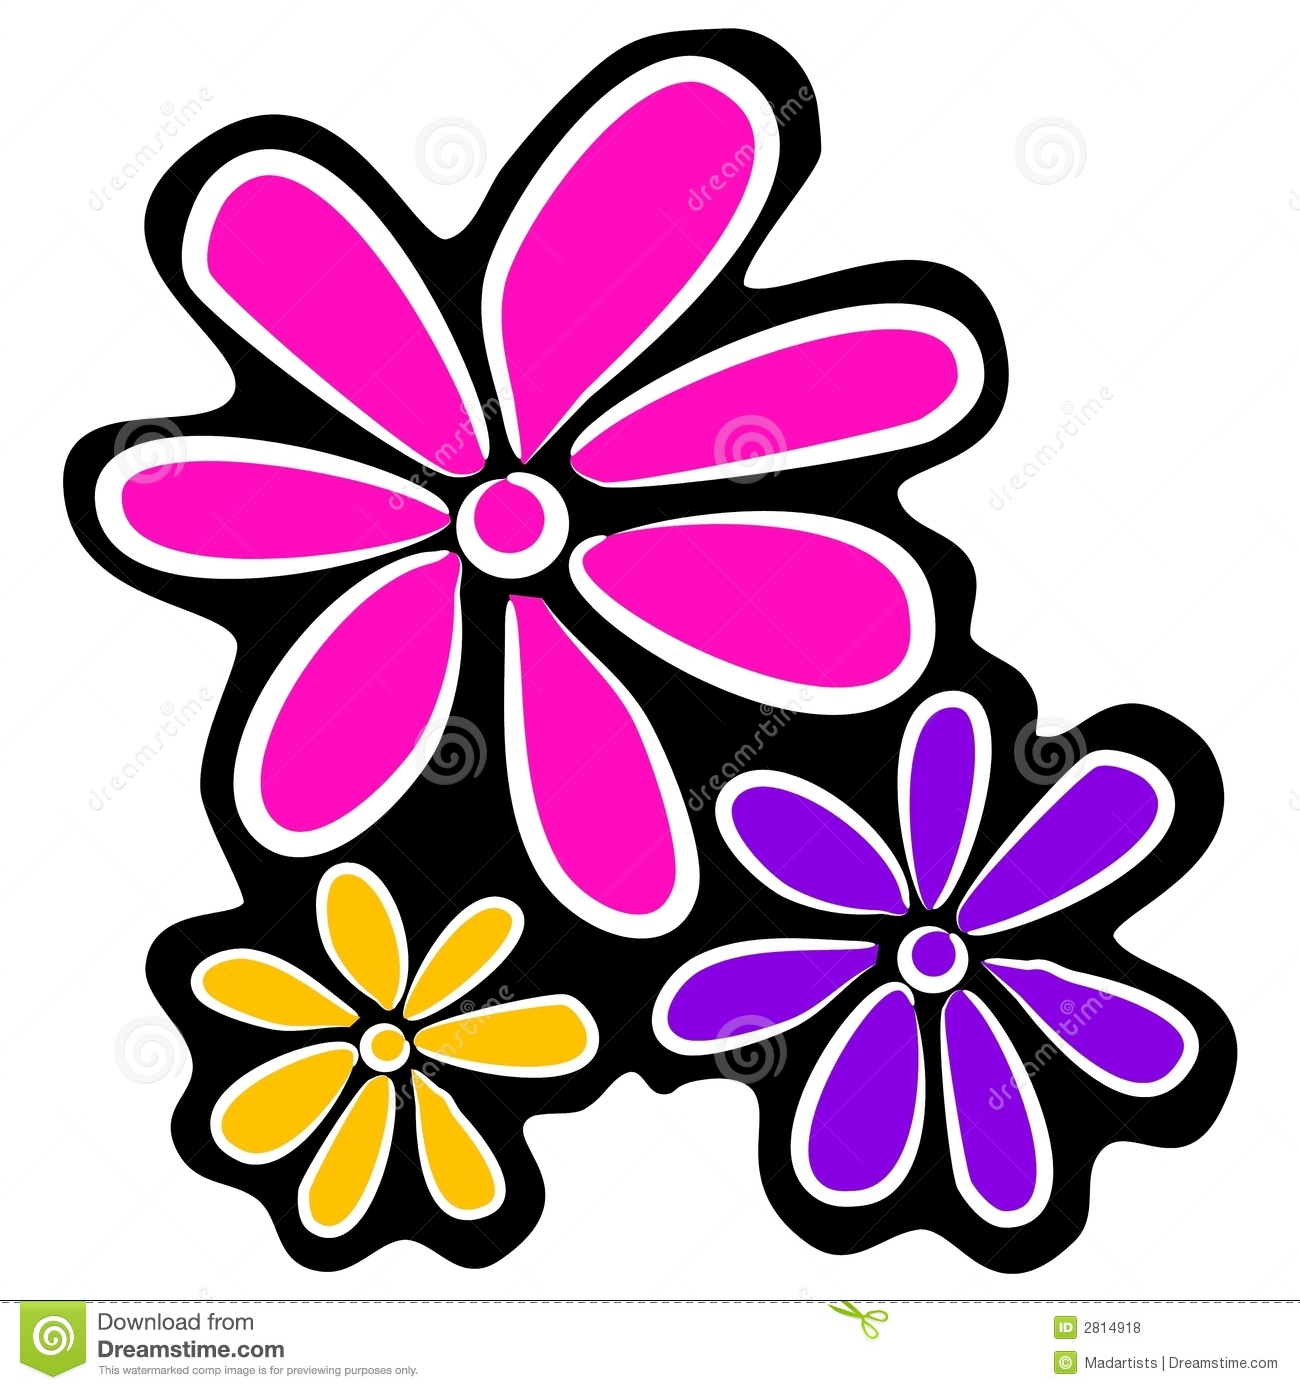 37258 Flower free clipart.